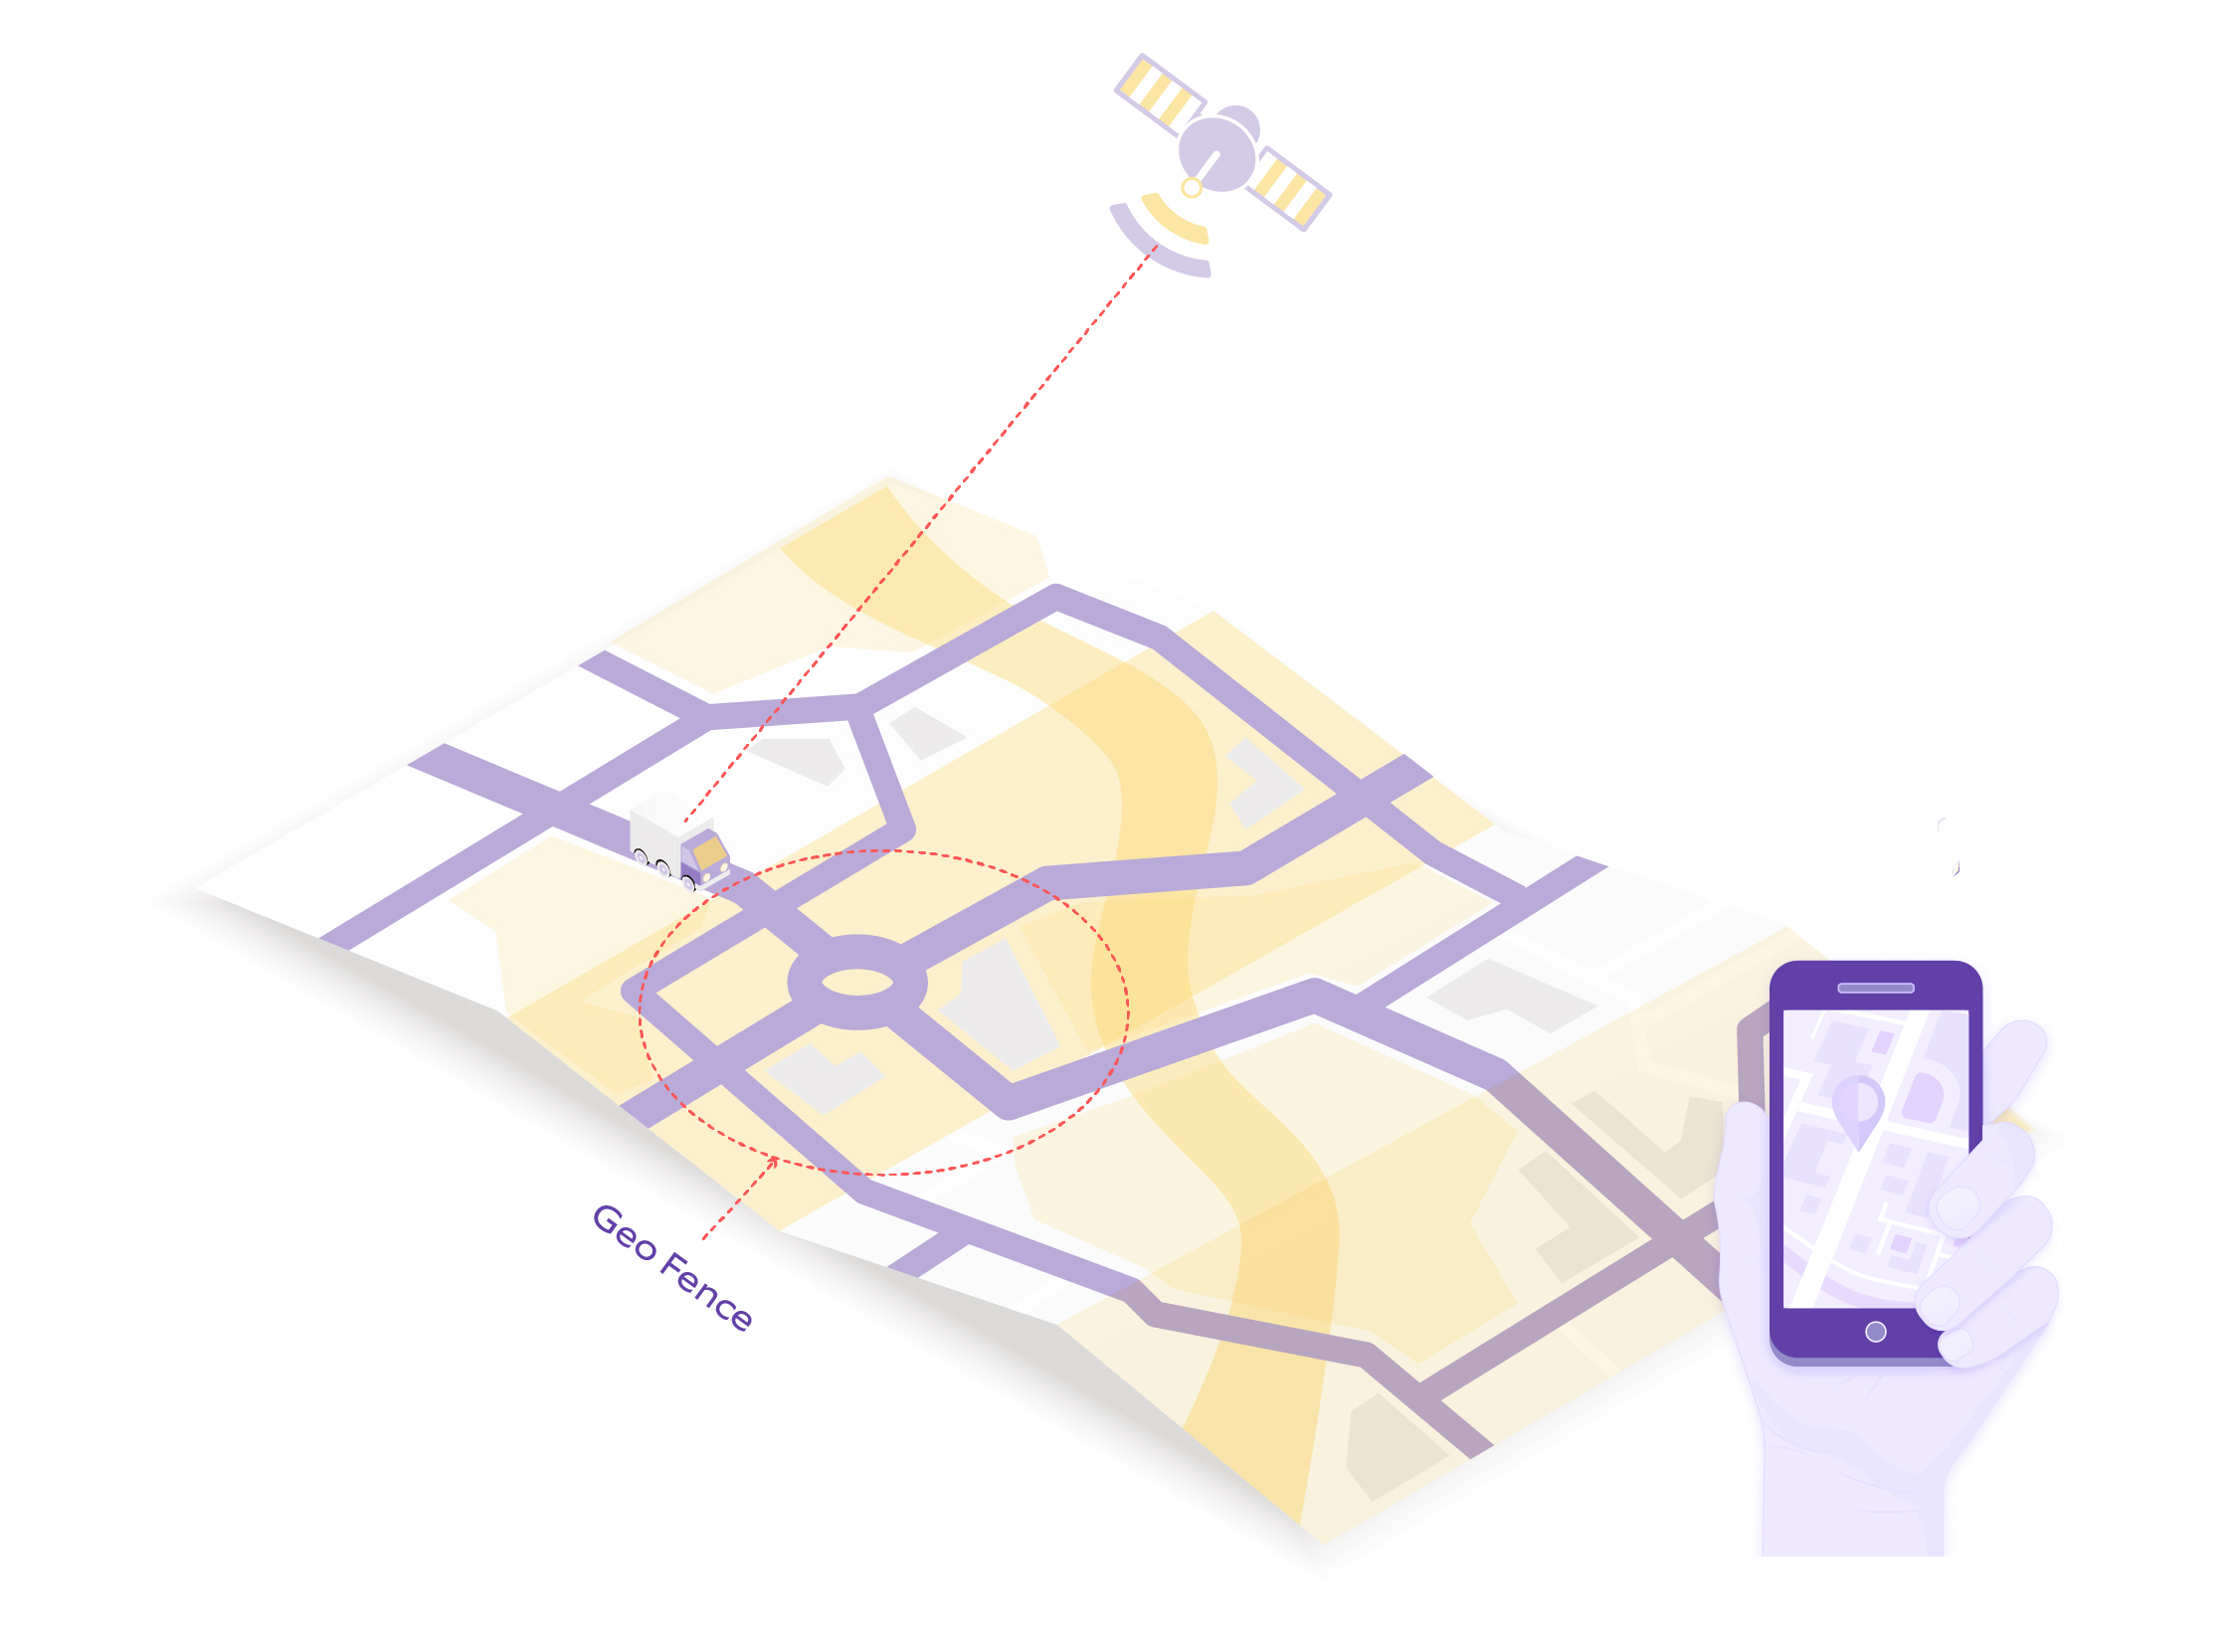 An illustration depicting what is geofencing